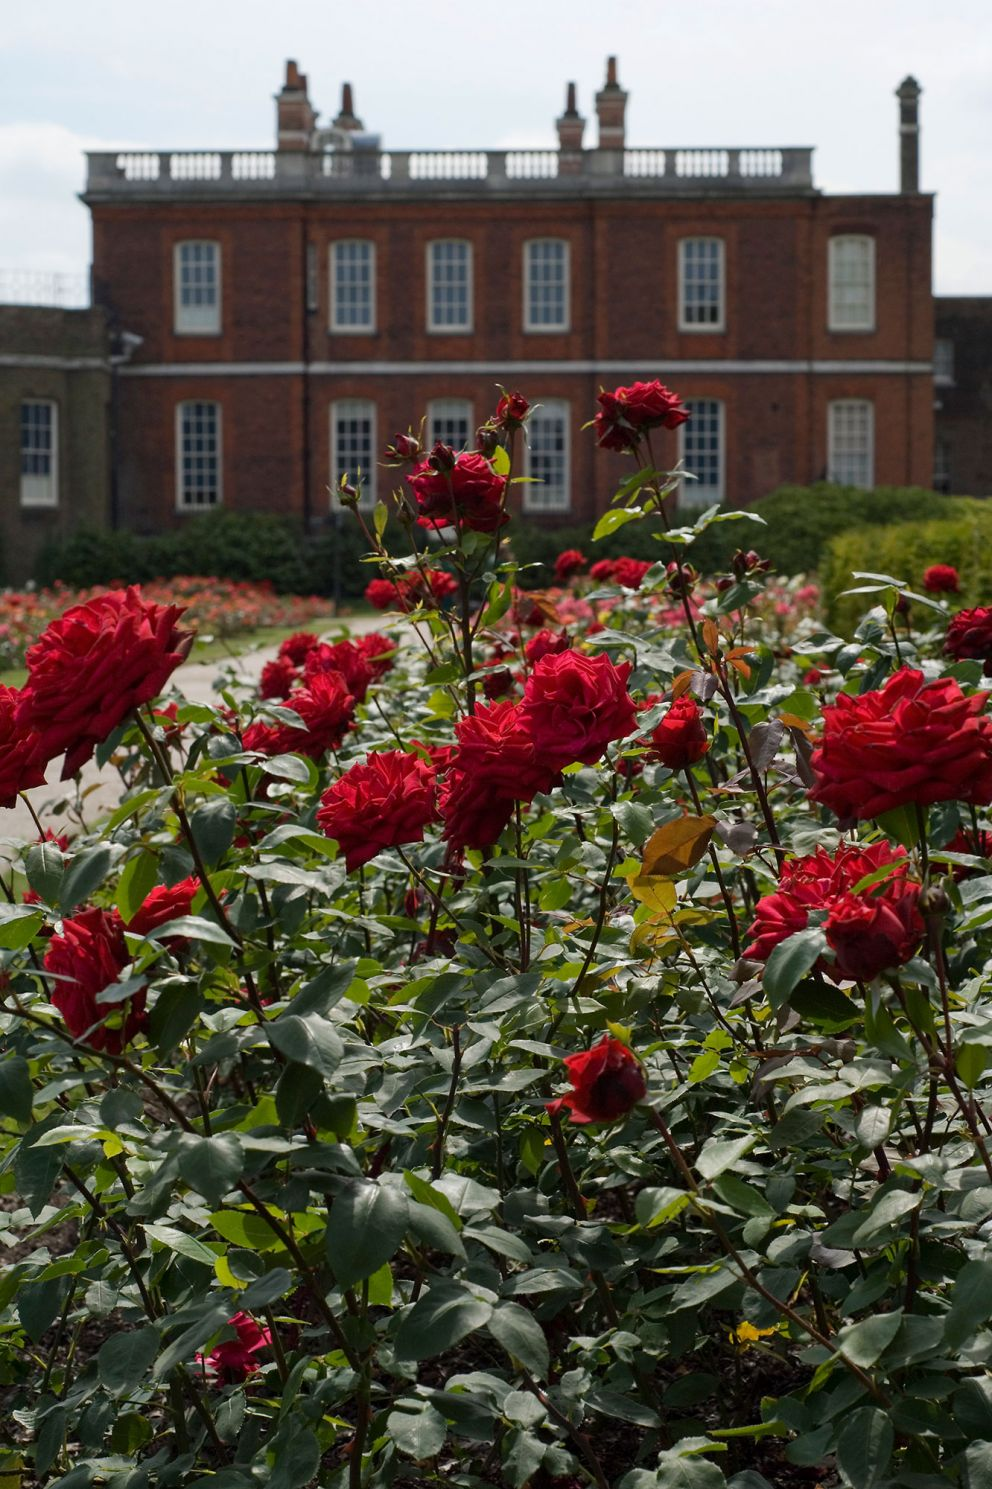 Roses In Garden: The Royal Parks